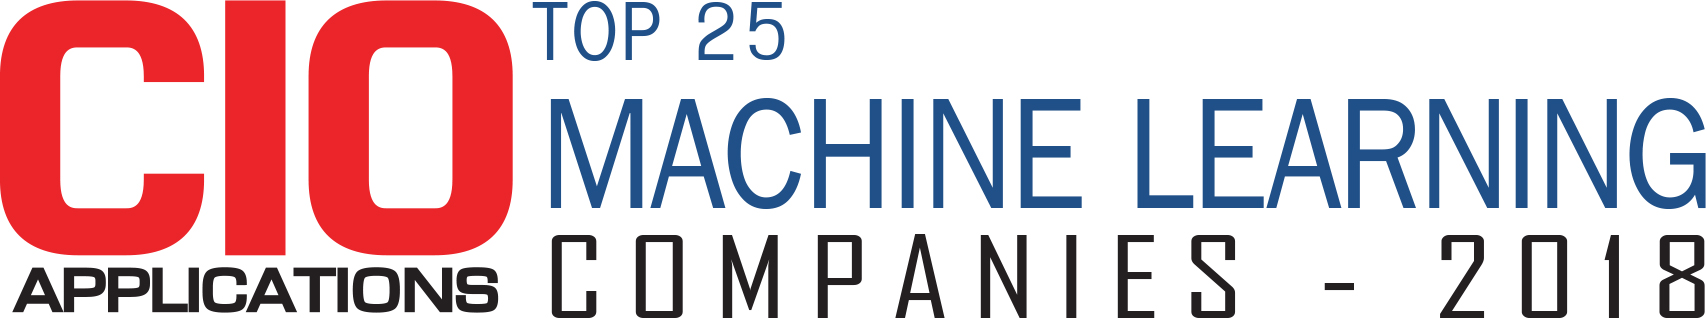 Top 25 Machine Learning Companies - 2018